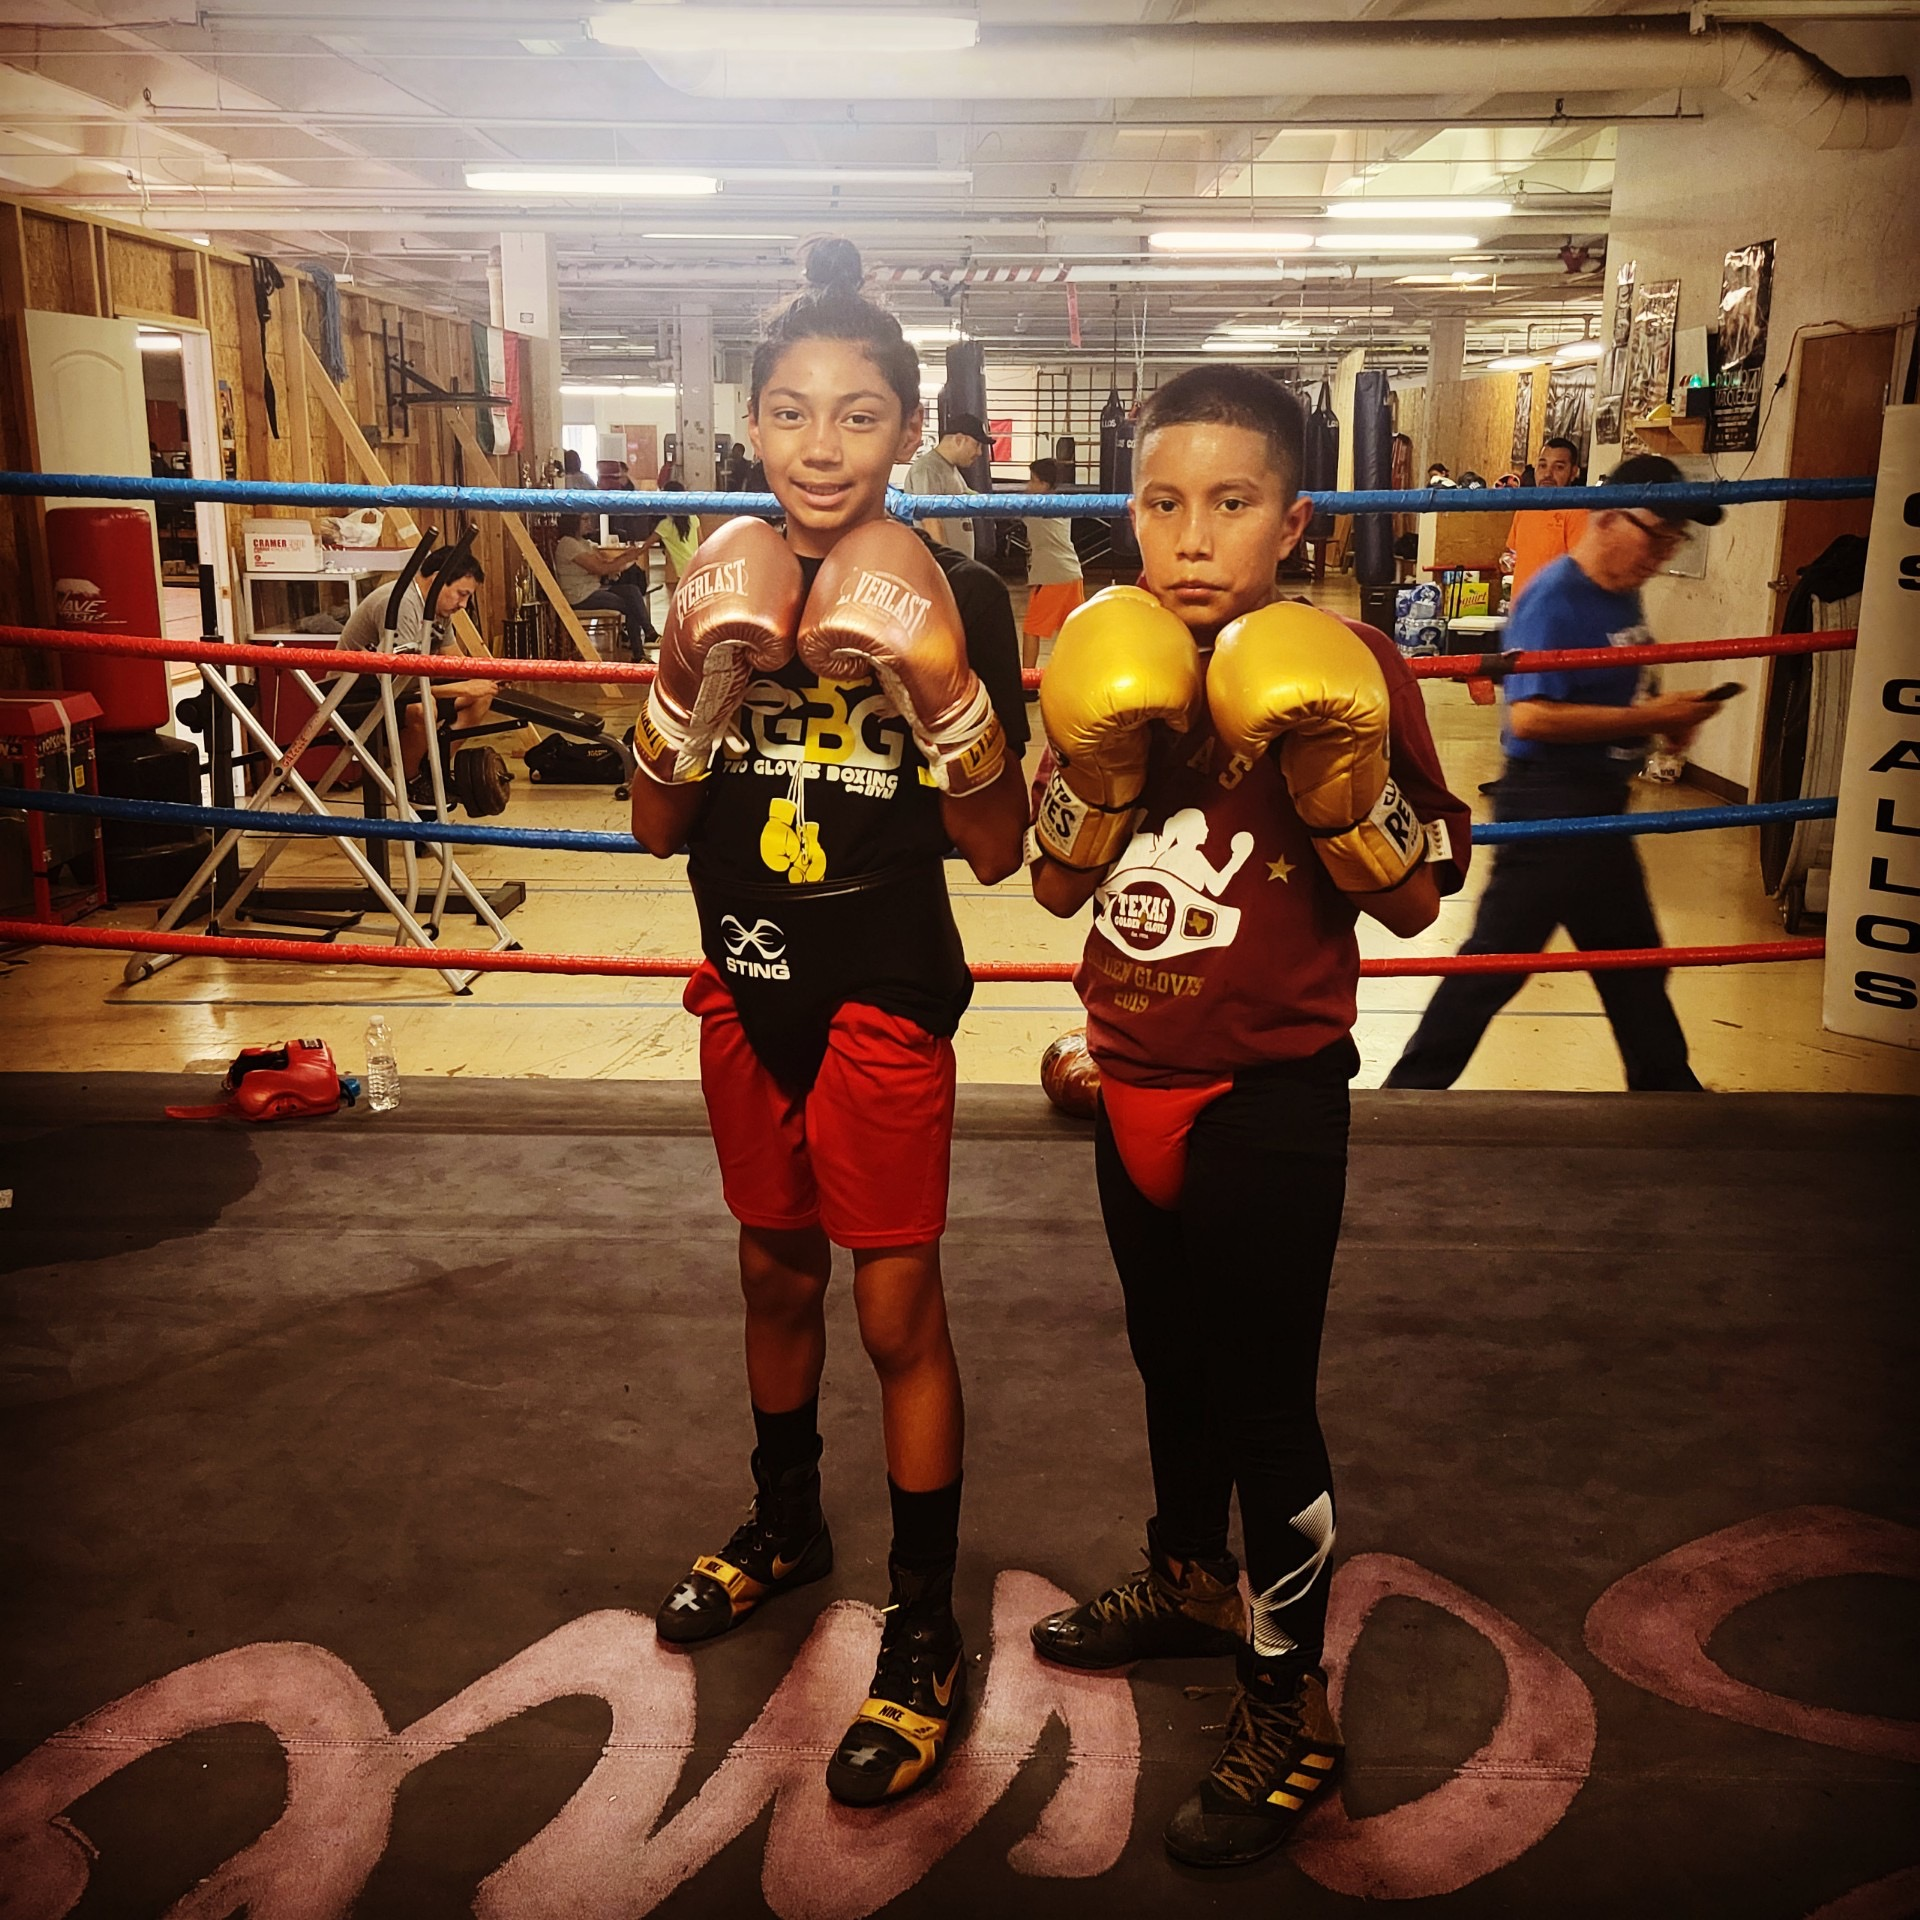 Los Gallos: A gym from West Dallas where boxing teaches life lessons